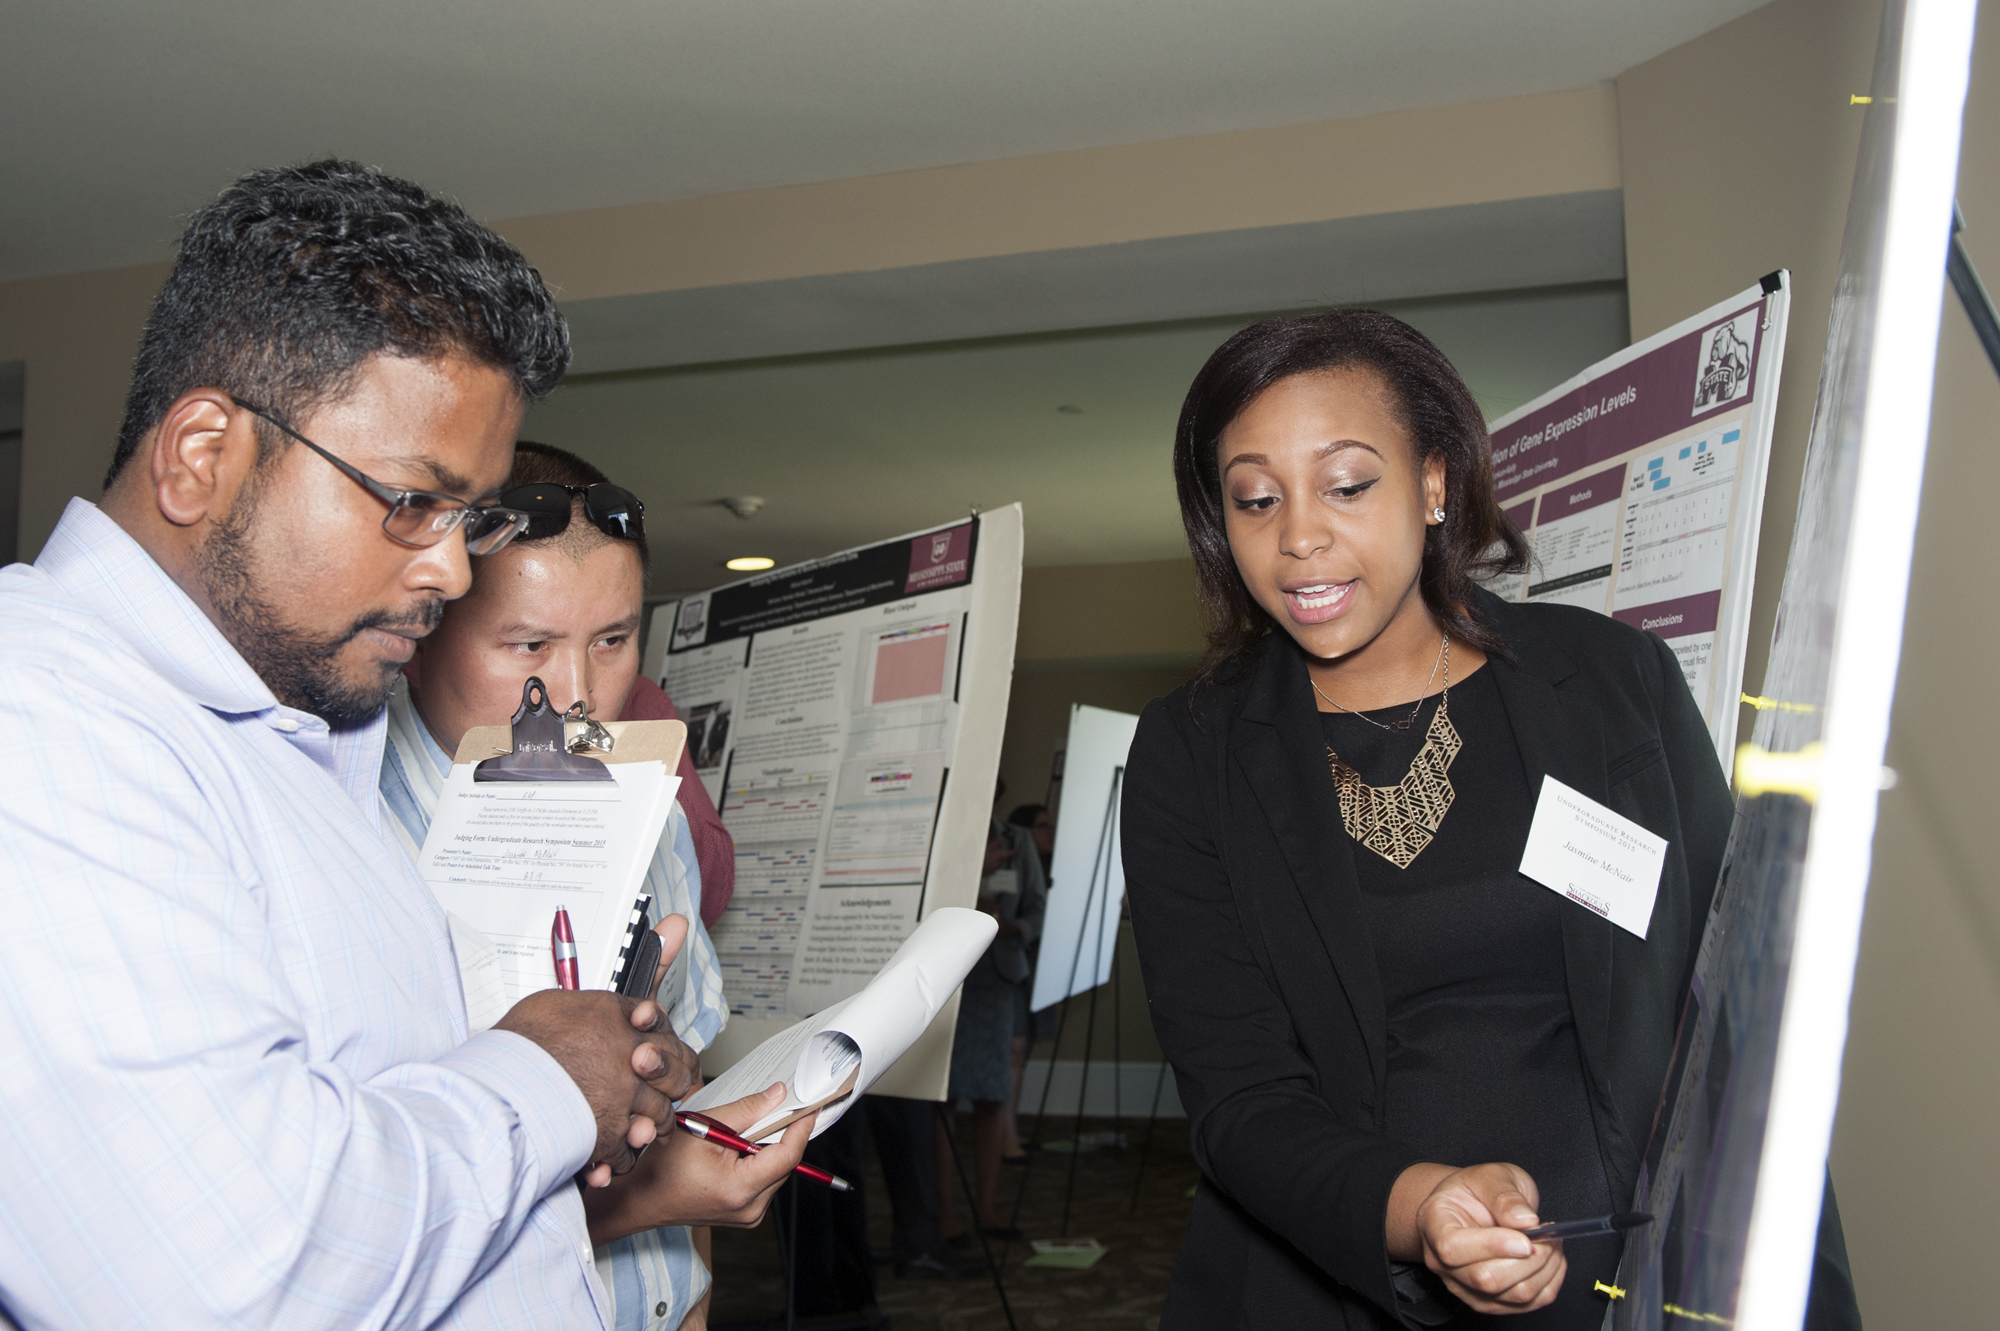 Mississippi State faculty members Raj Prabhu (l) and Thu Dinh look on as freshman Jasmine S. McNair of Ridgeland presented her project during the university's 2015 Undergraduate Summer Research Symposium organized by the Shackouls Honors College.